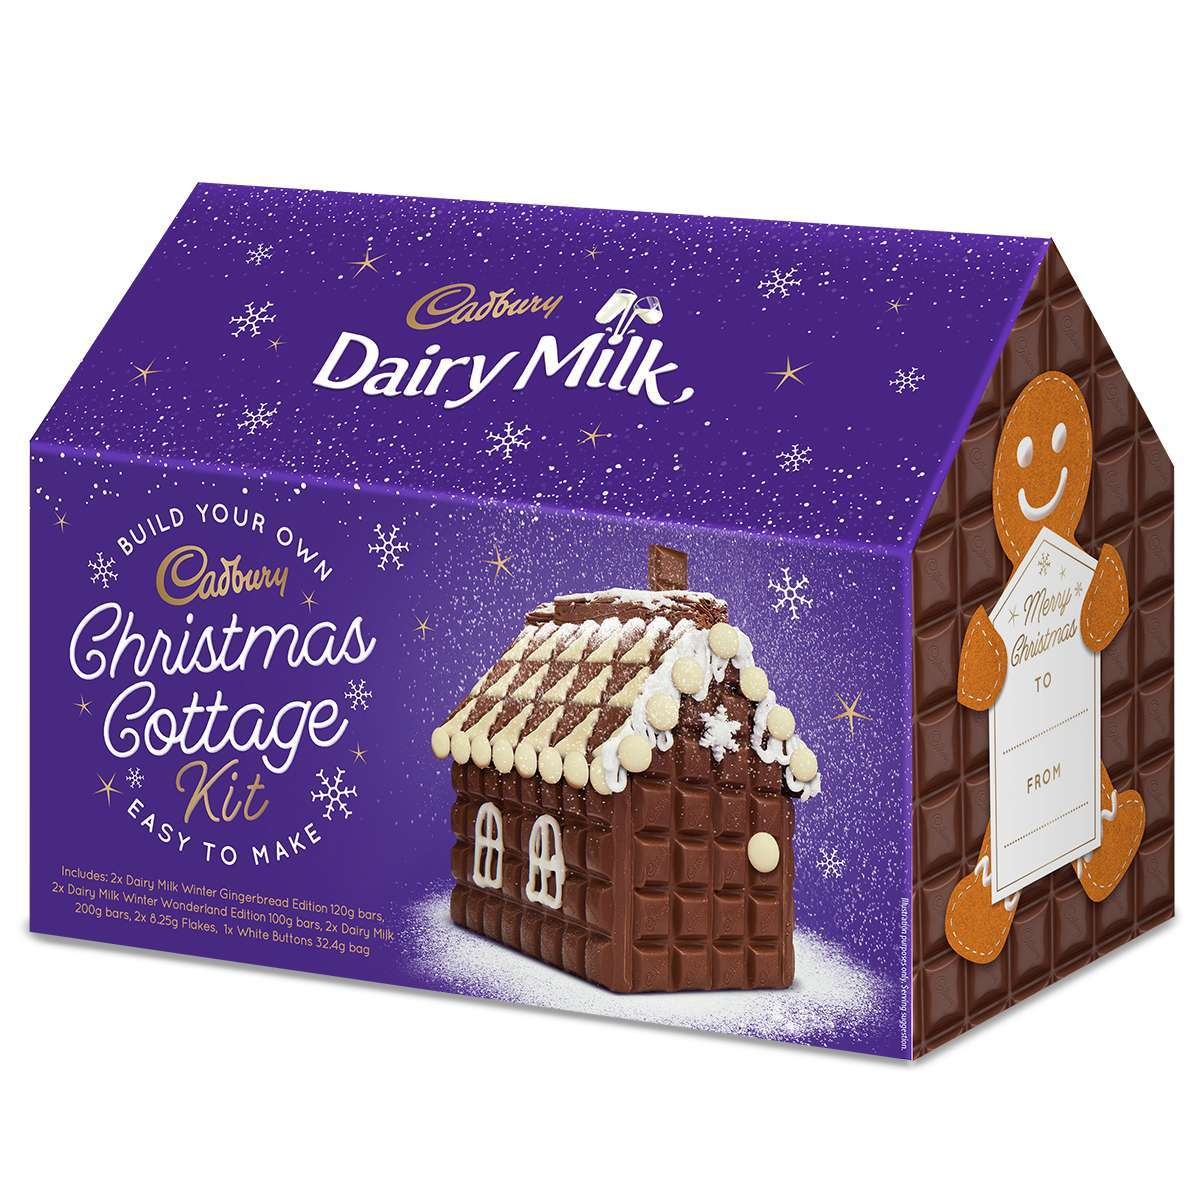 Cadbury replace the gingerbread house with chocolate Christmas cottage